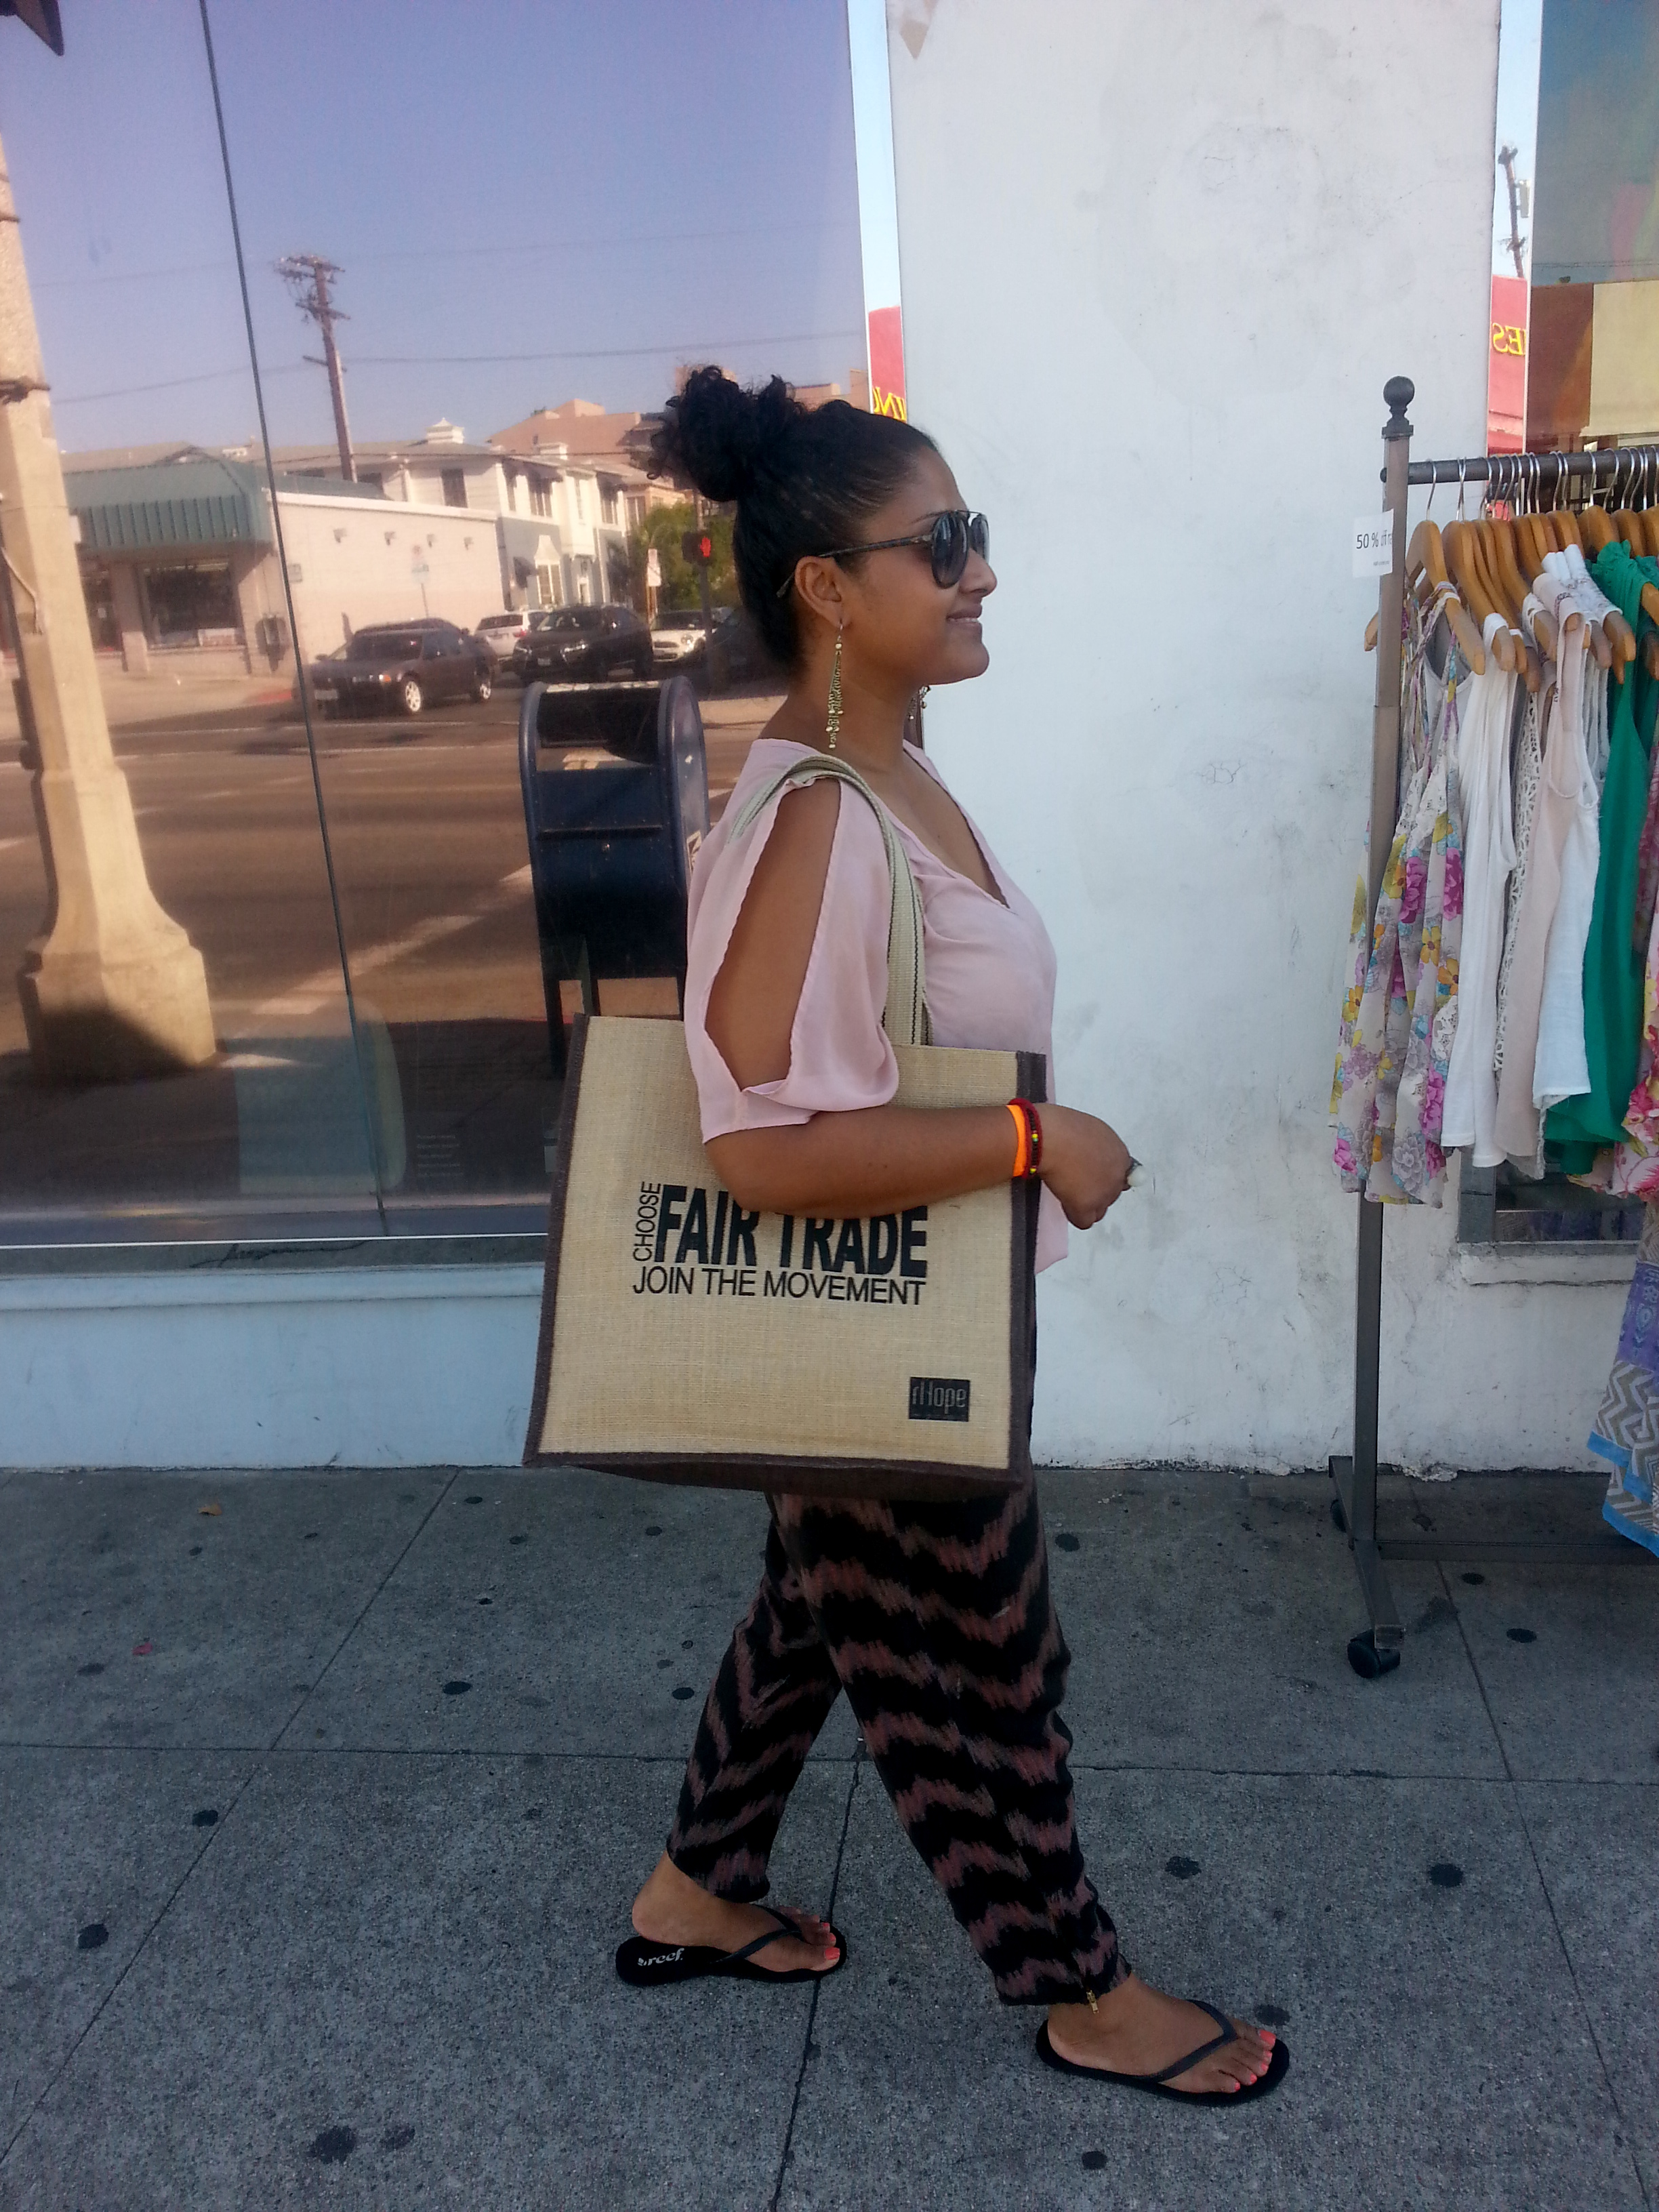 Sonali shopping, fair trade la, rhope, eco friendly bag, vegan, empowering women